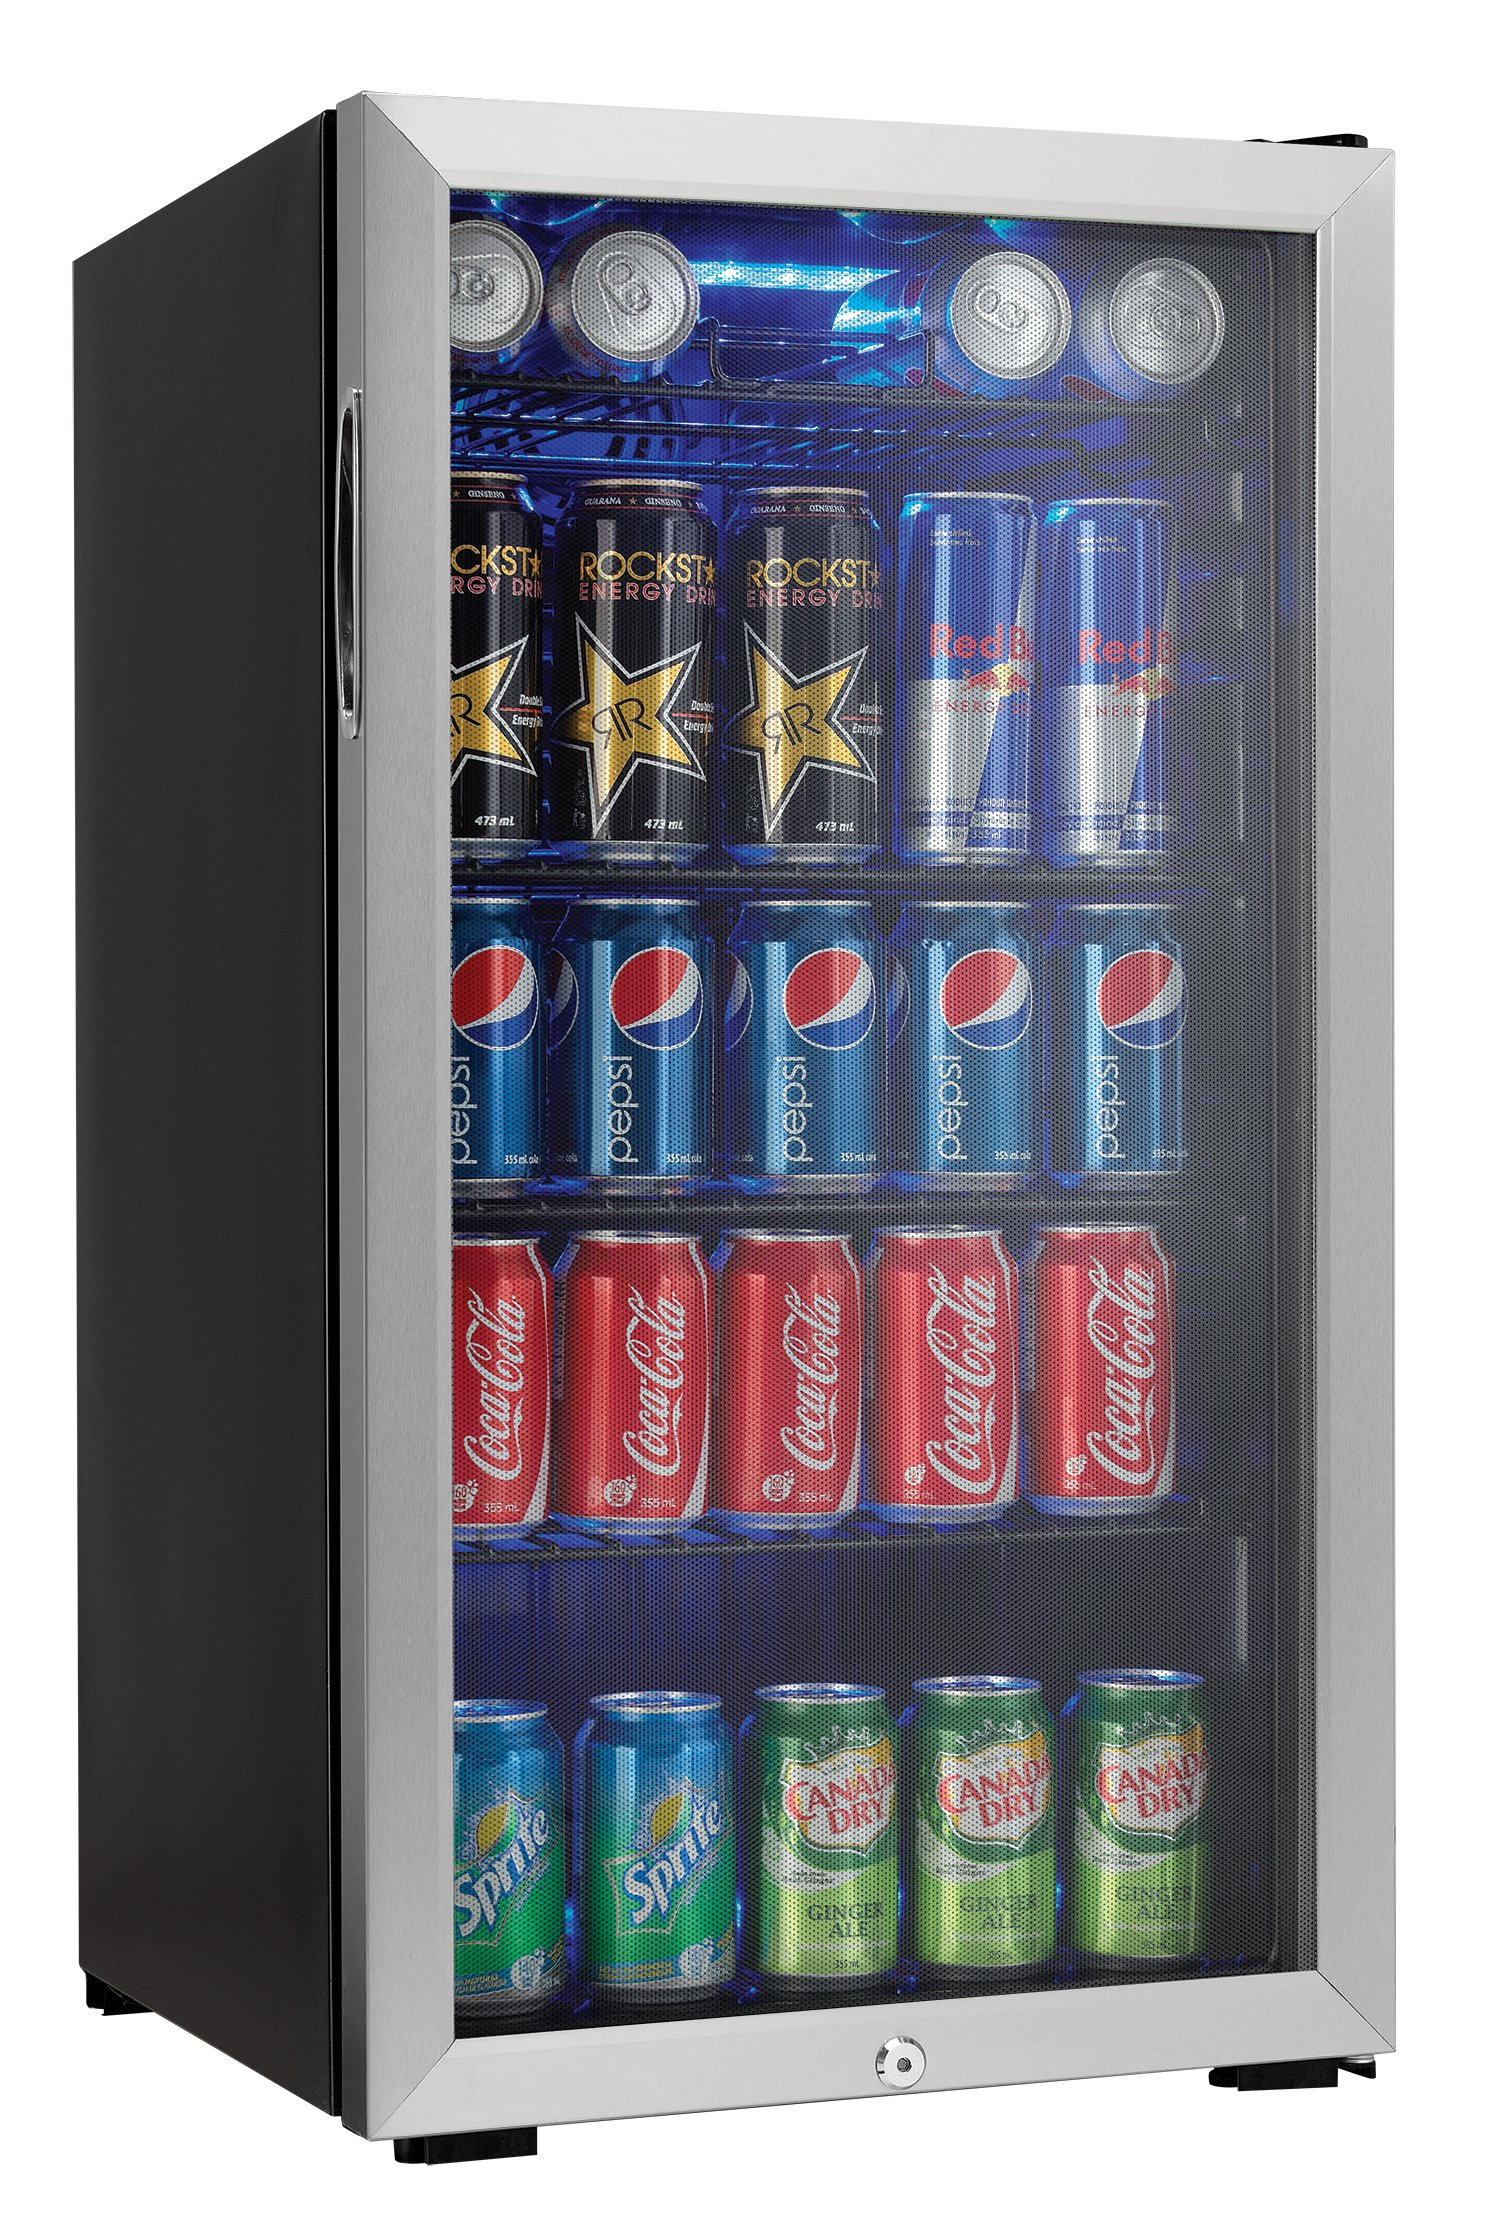 Danby 120 Can Beverage Center, Stainless Steel DBC120BLS by Danby